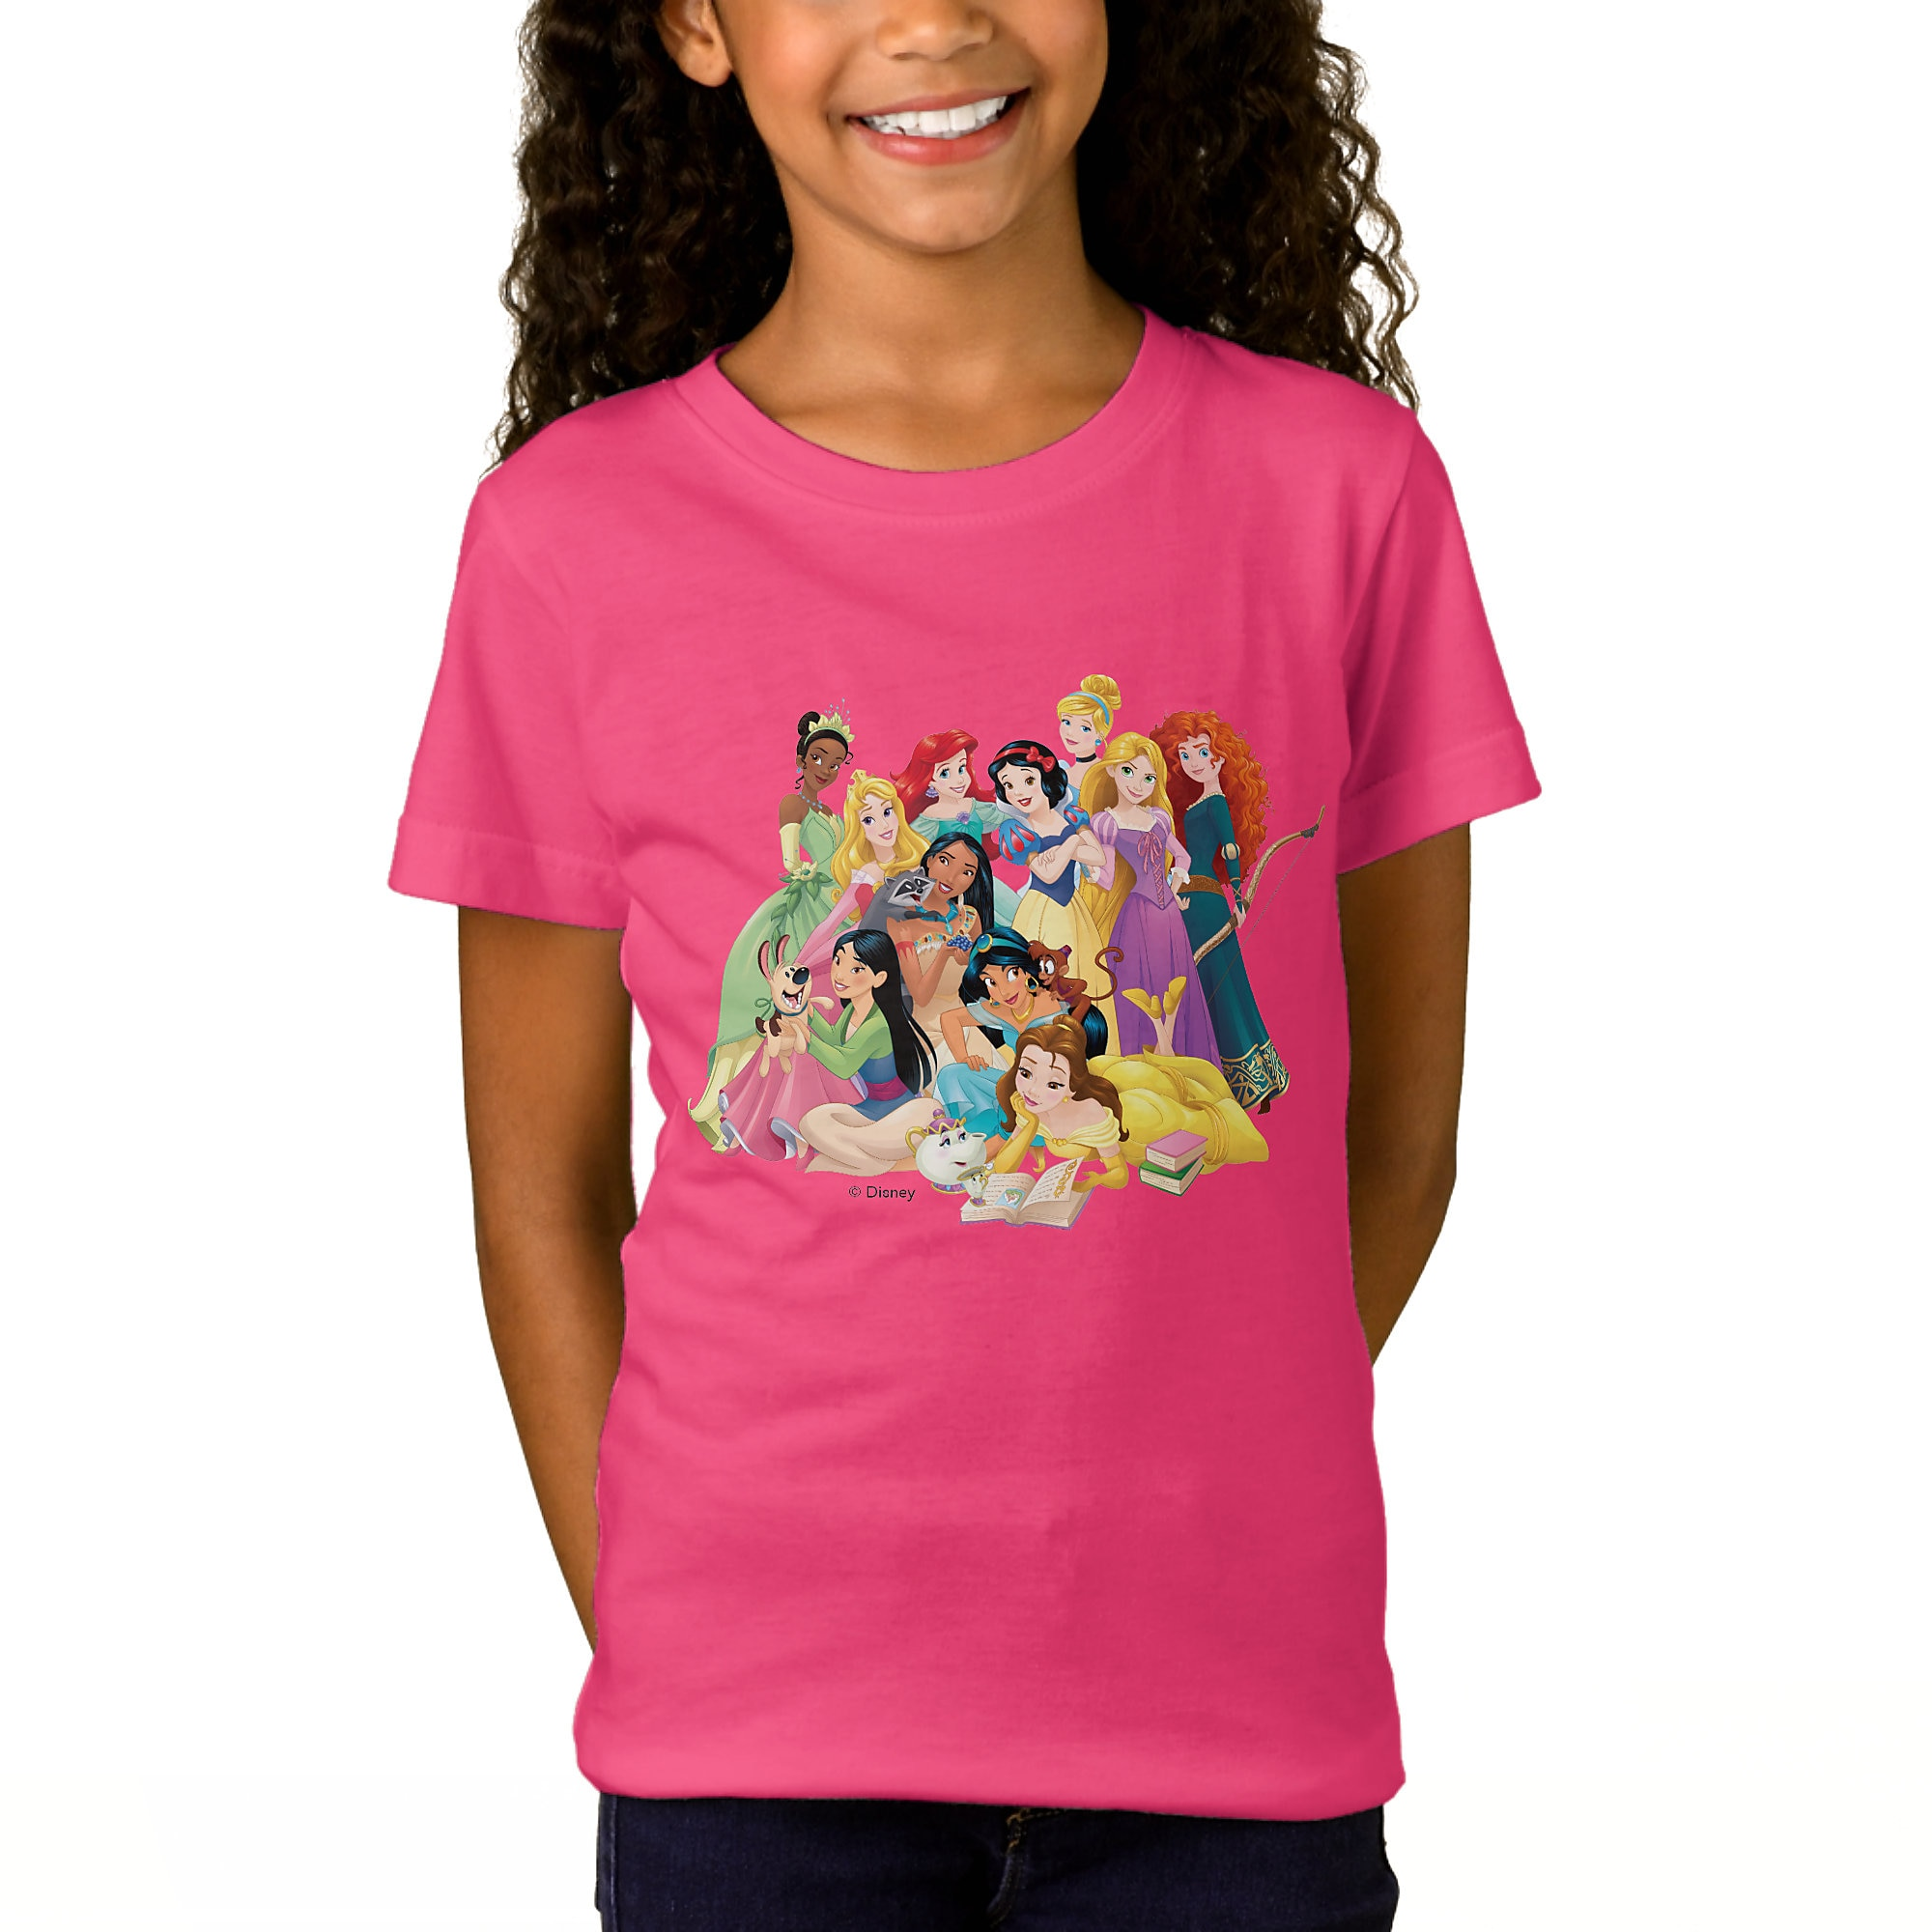 Disney Princess ''Adventure Begins Here'' T-Shirt for Girls - Customizable